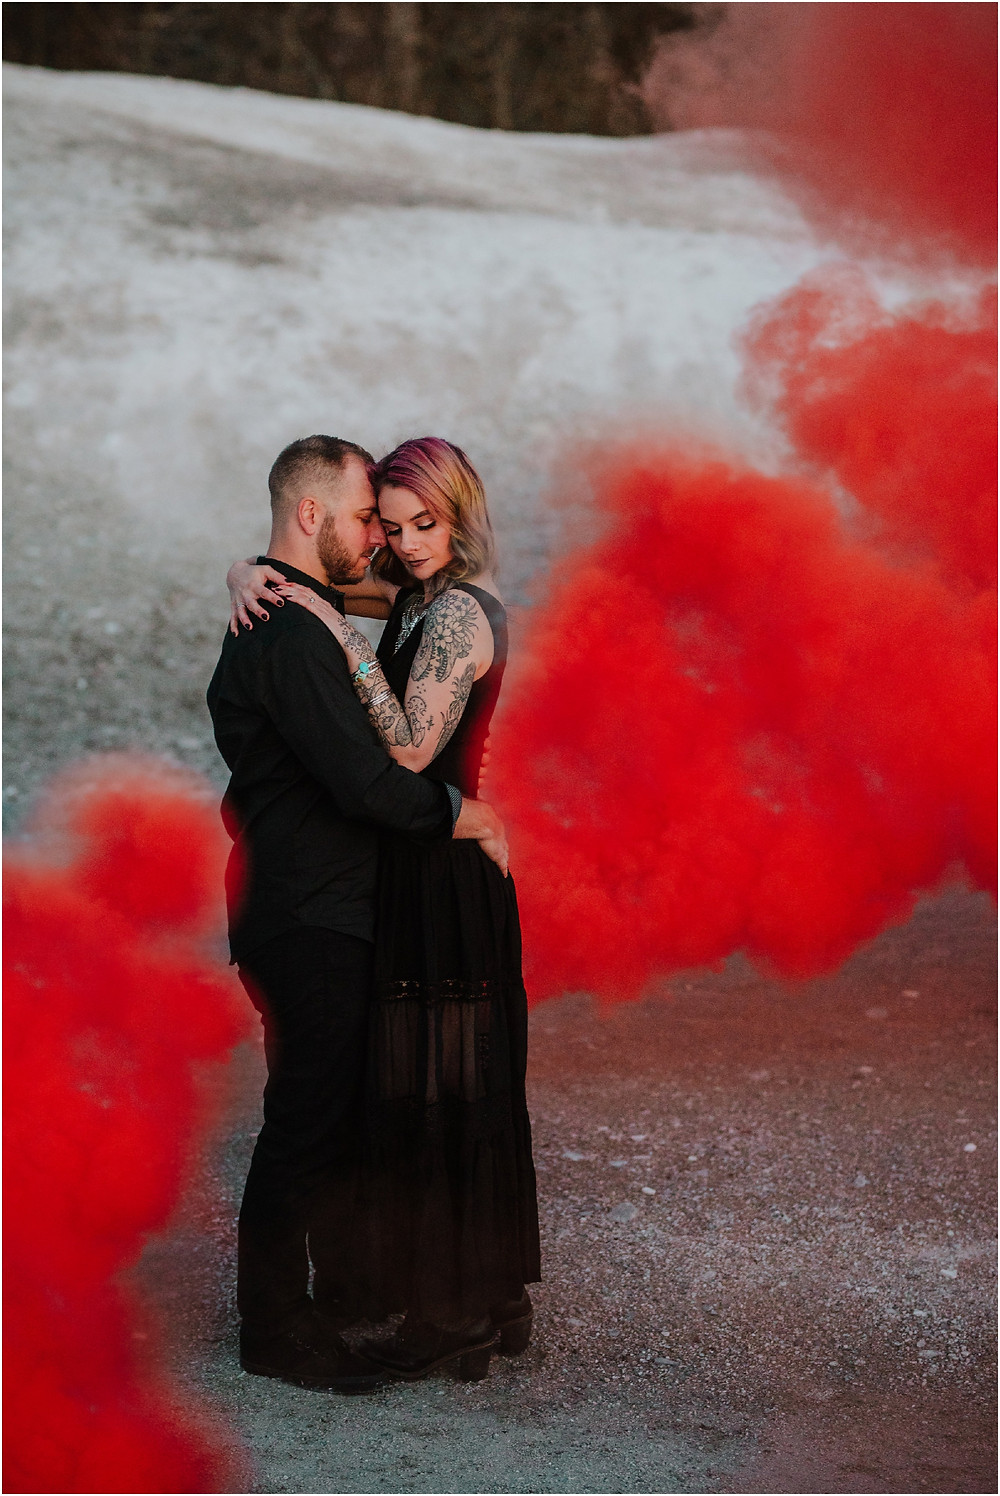 Smoke Bomb Moody Pennsylvania Engagement Session by Karen Rainier Photography